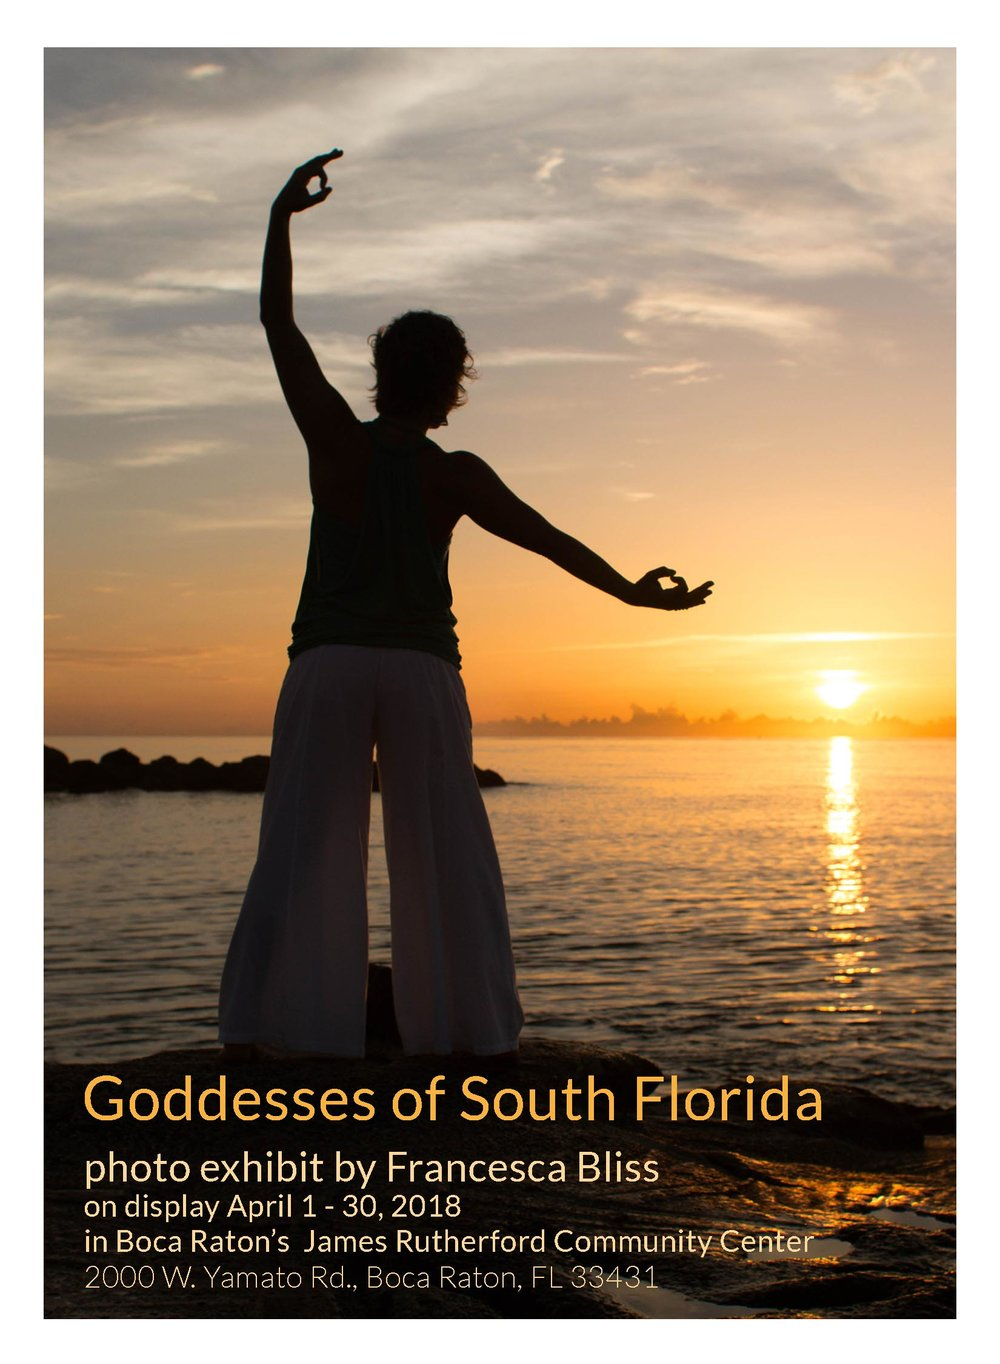 goddesses-of-south-florida-photography-exhibit